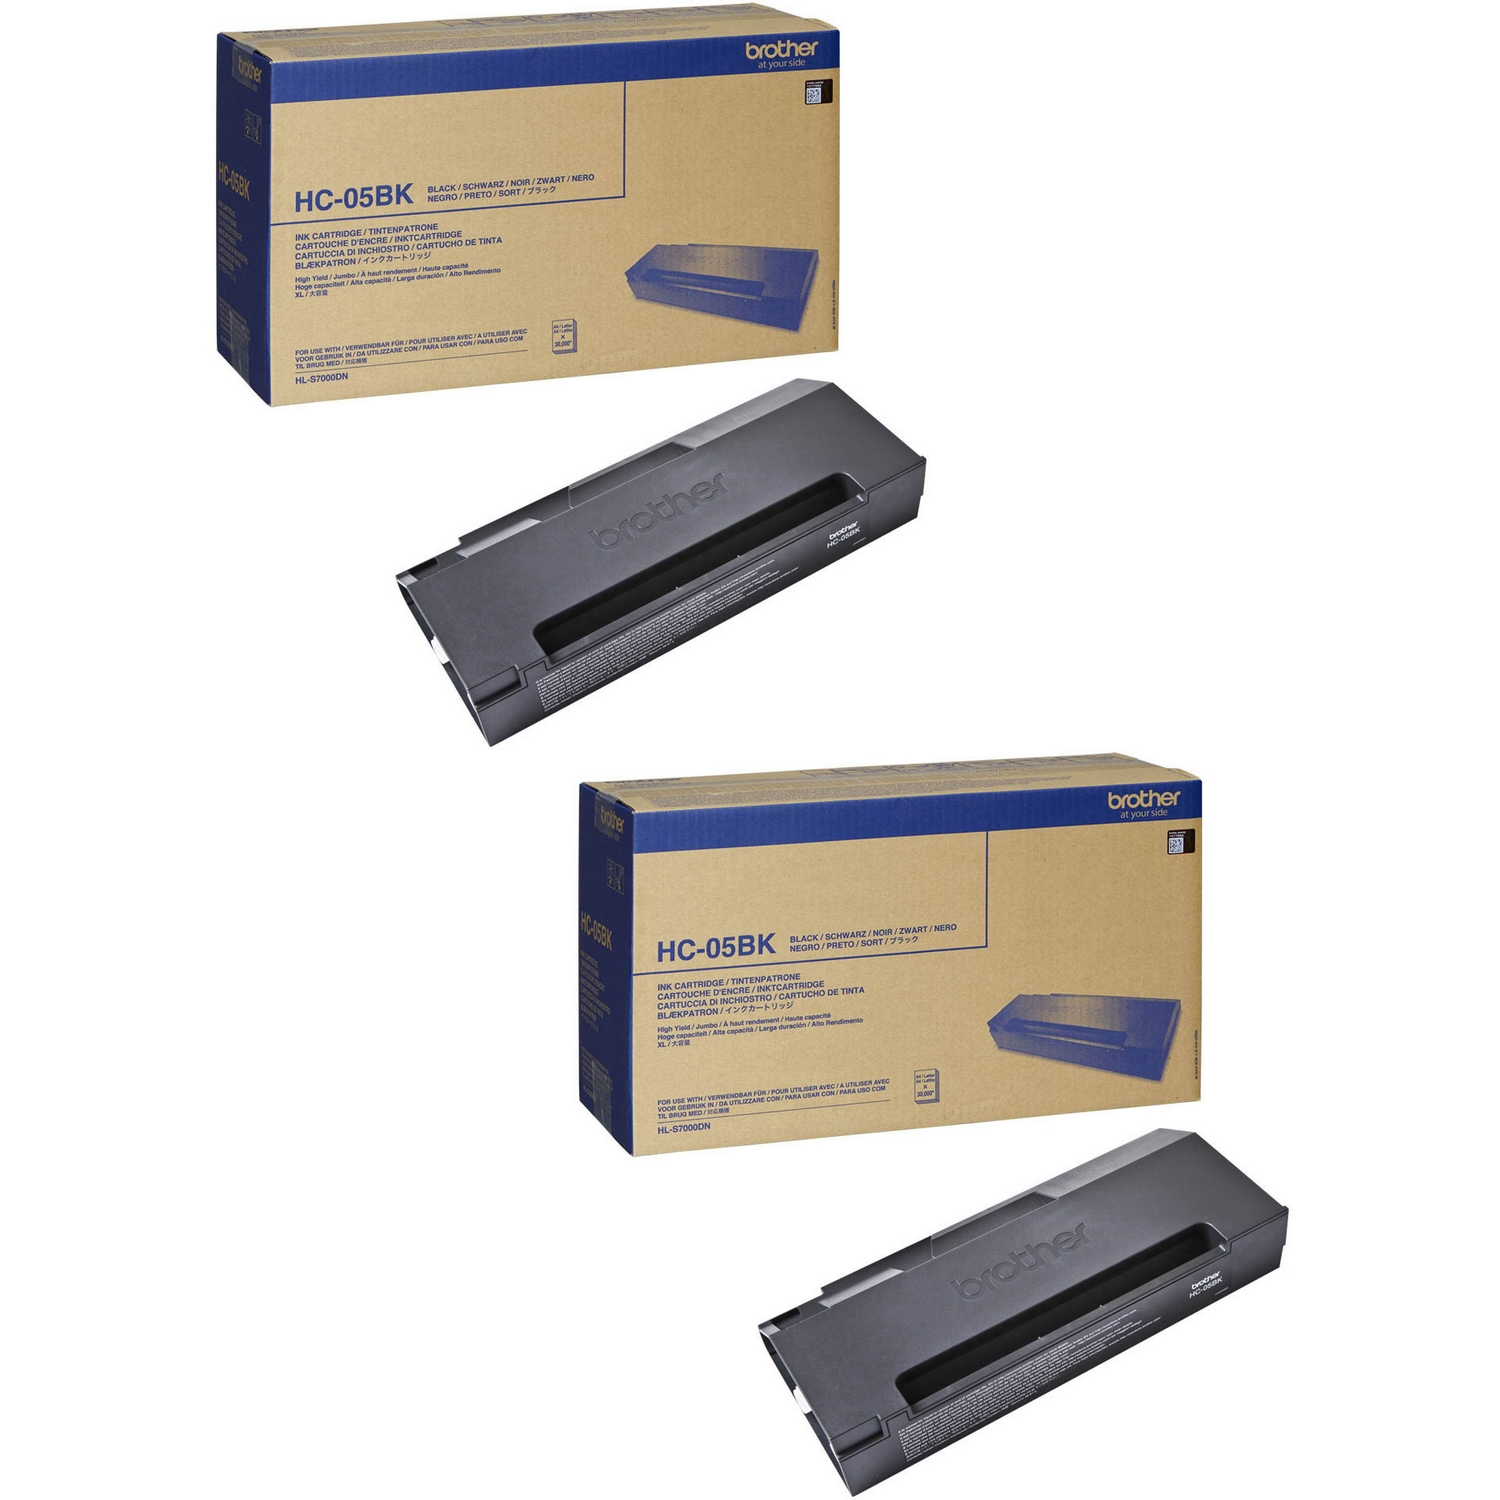 Original Brother HC05BK Black Twin Pack Super High Capacity Ink Cartridges (HC05BK)